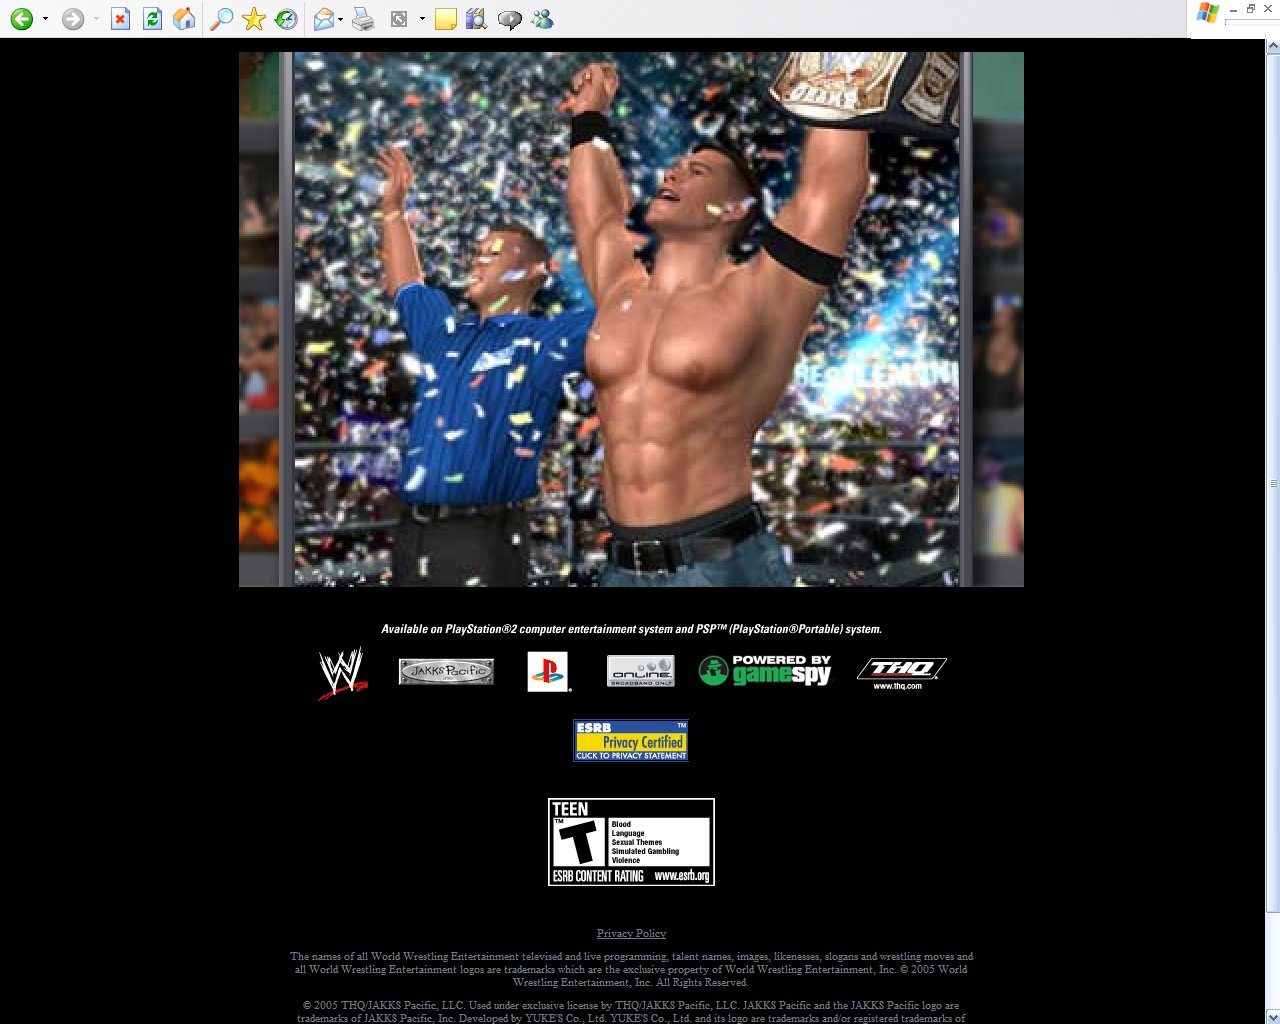 WWE Smackdown vs. Raw 2006 : Online Games Review Directory